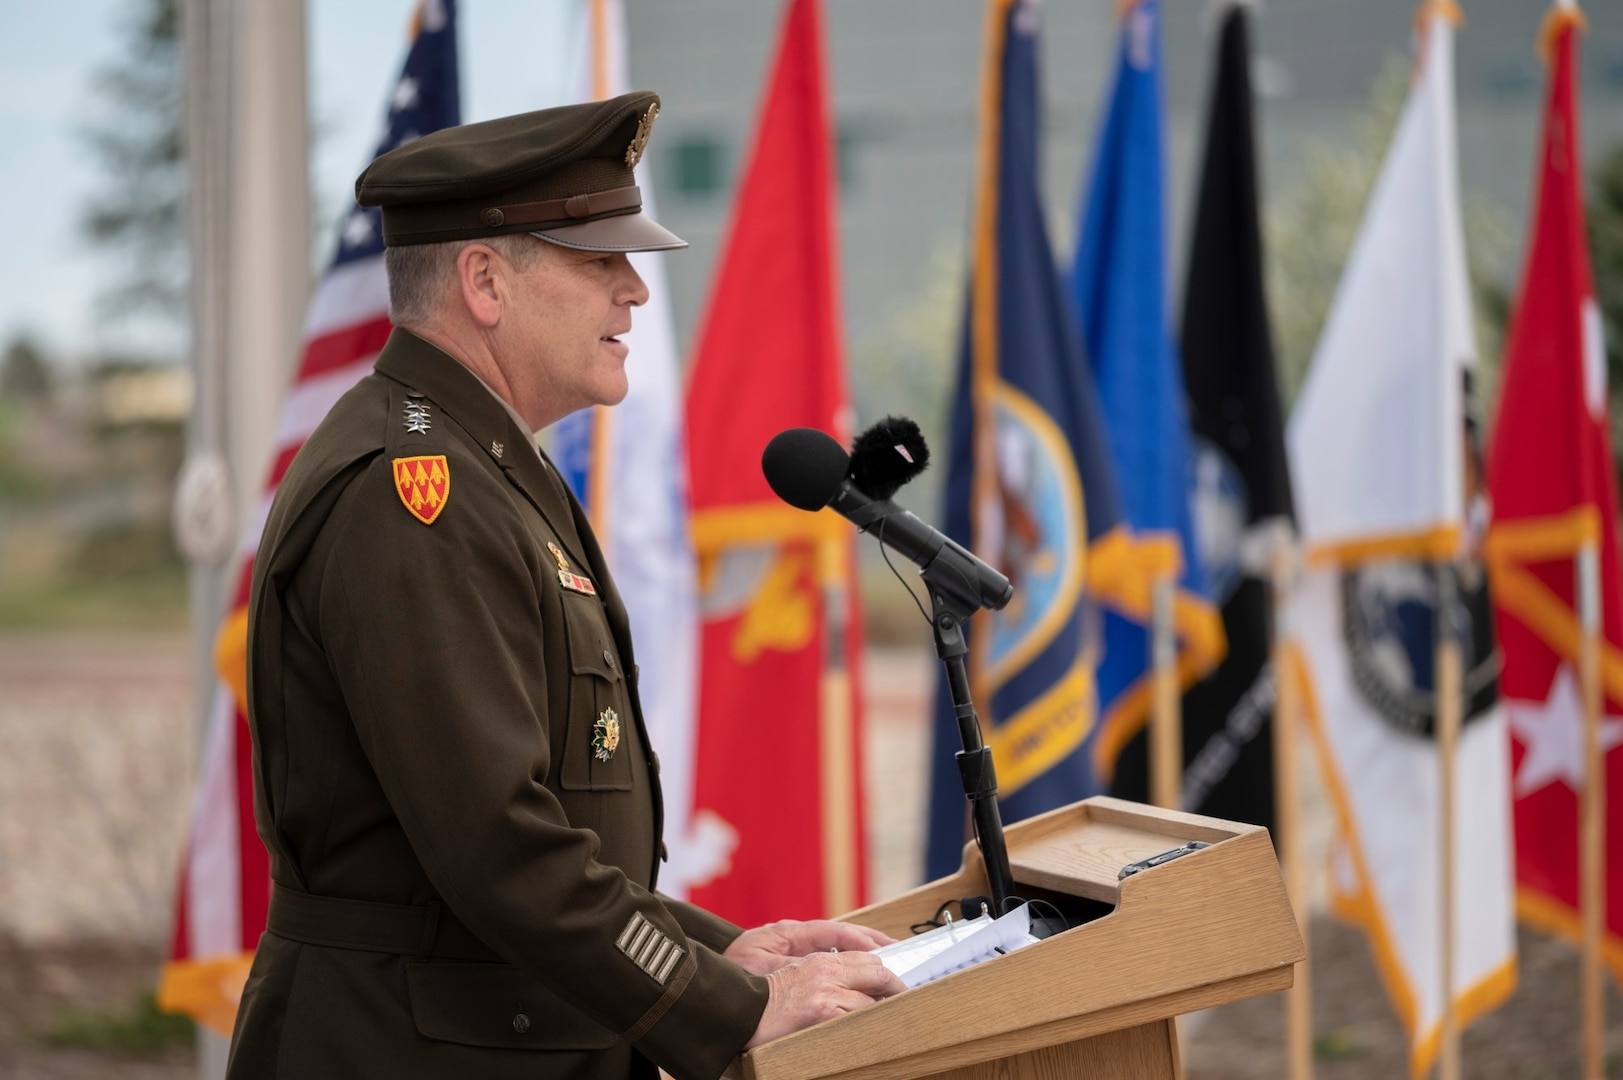 U.S. Army Gen. James Dickinson, commander of United States Space Command, addresses a crowd of service members and Gold Star families during USSPACECOM's Gold Star service flag raising ceremony May 7 at Peterson Air Force Base, Colorado. The ceremony was held in conjunction with Gold Star Awareness Month.